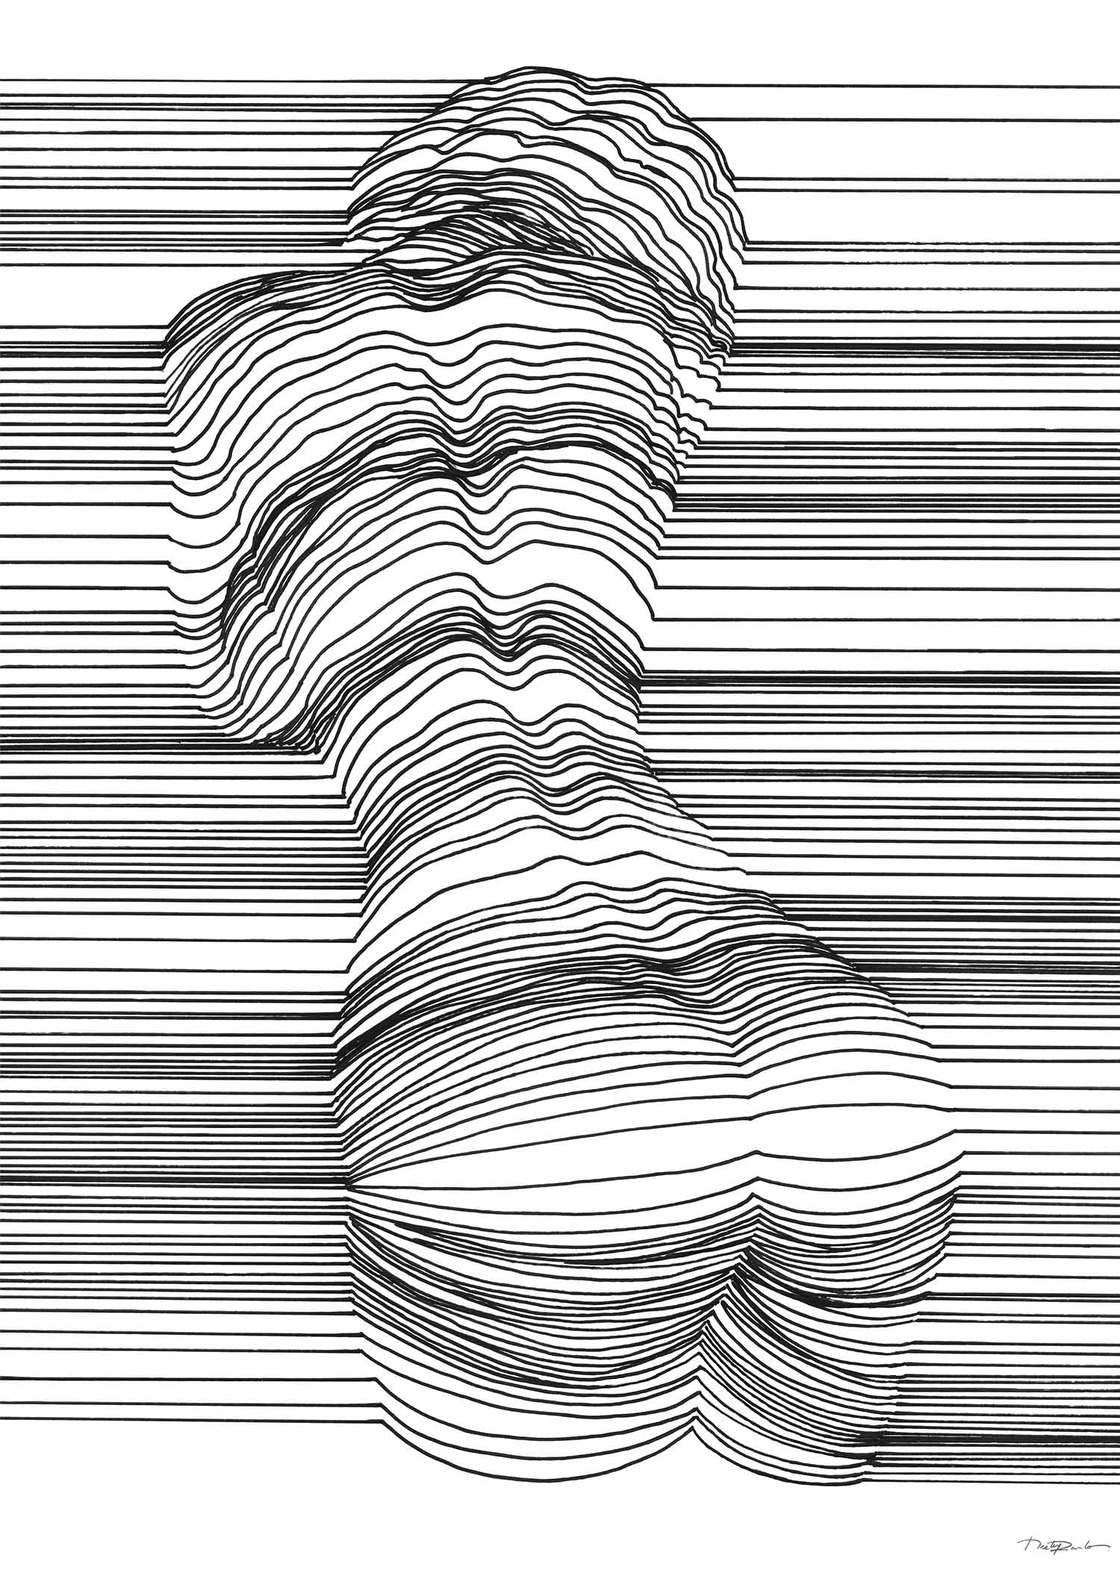 Sensual Lines - The suggestive illustrations of Nester Formentera